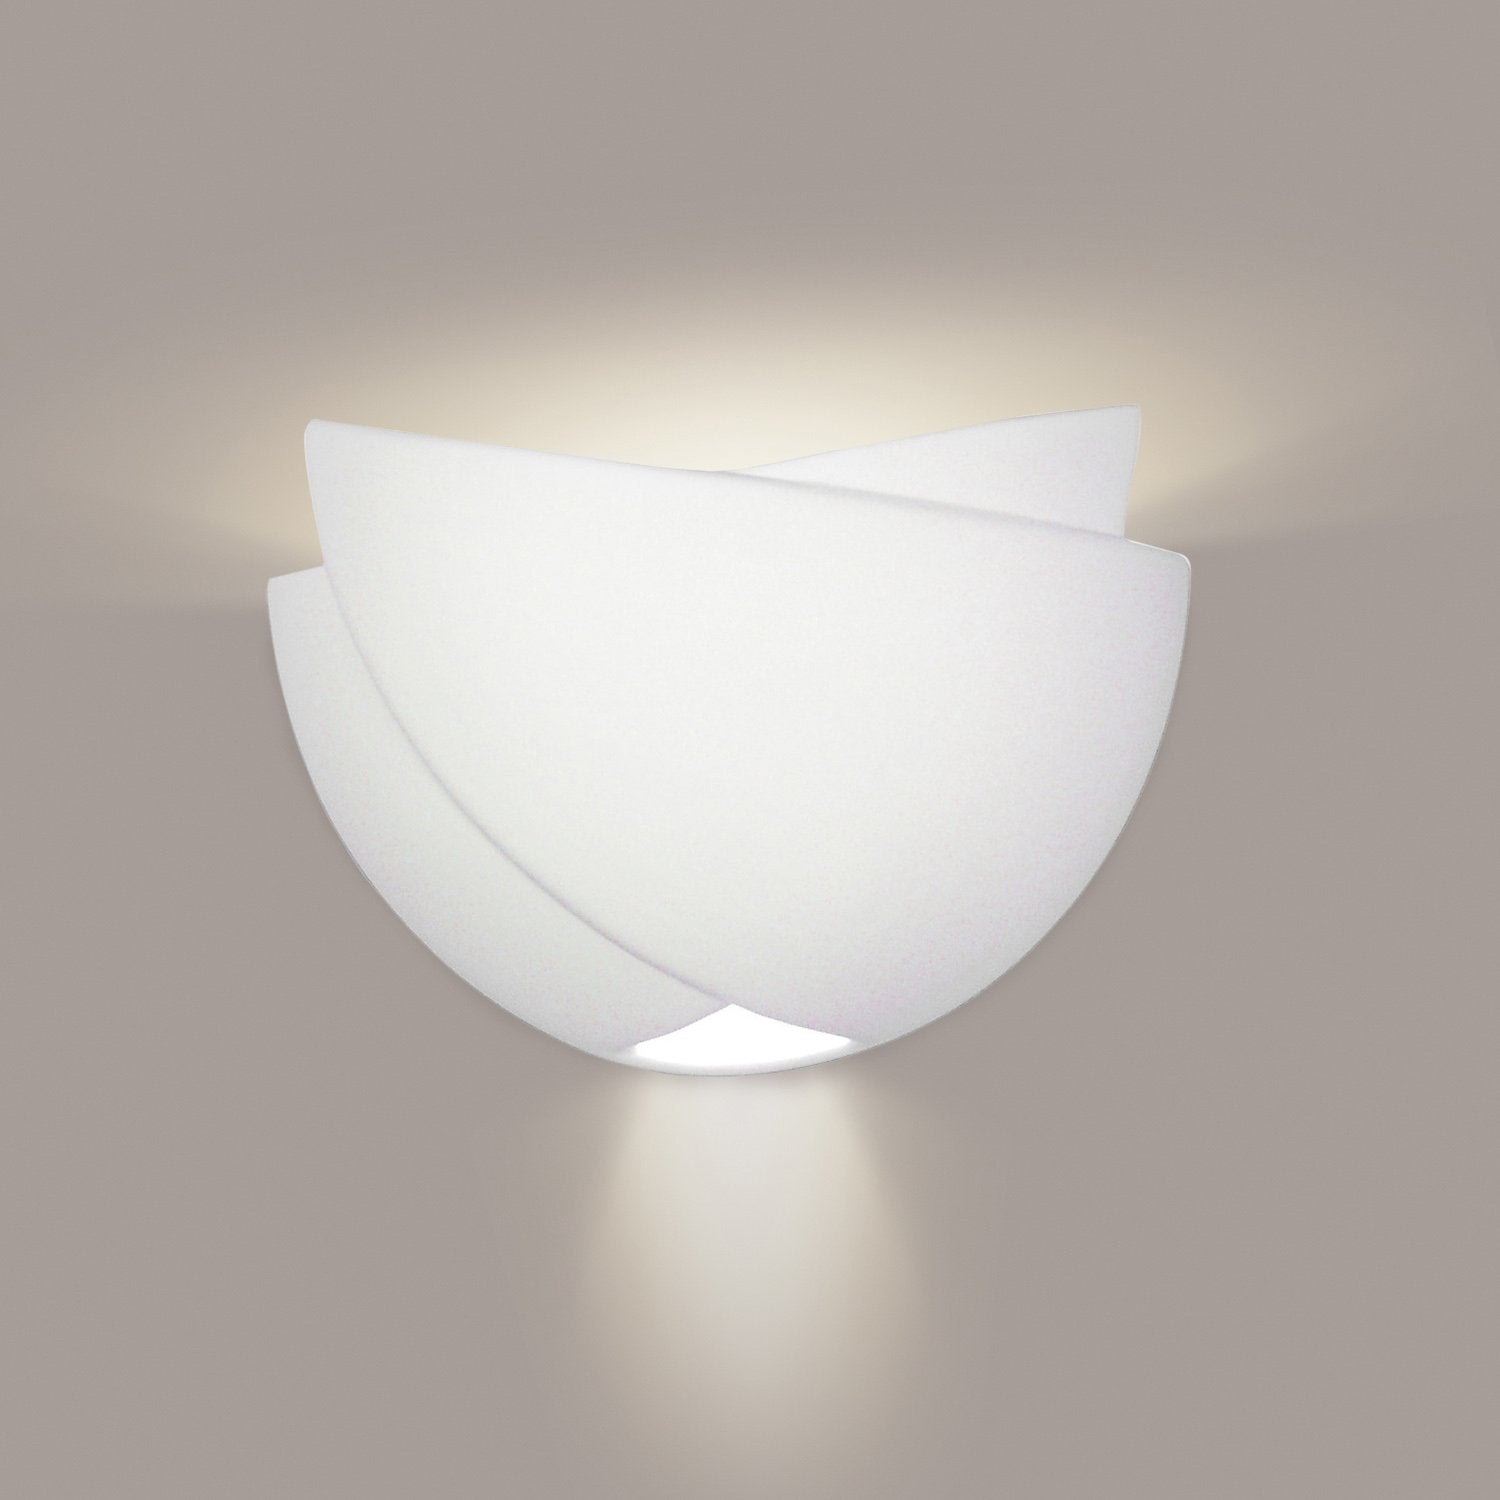 A19 602-CFL13-A11 Islands of Light Collection Ceylon Fog Finish Wall Sconce from A19